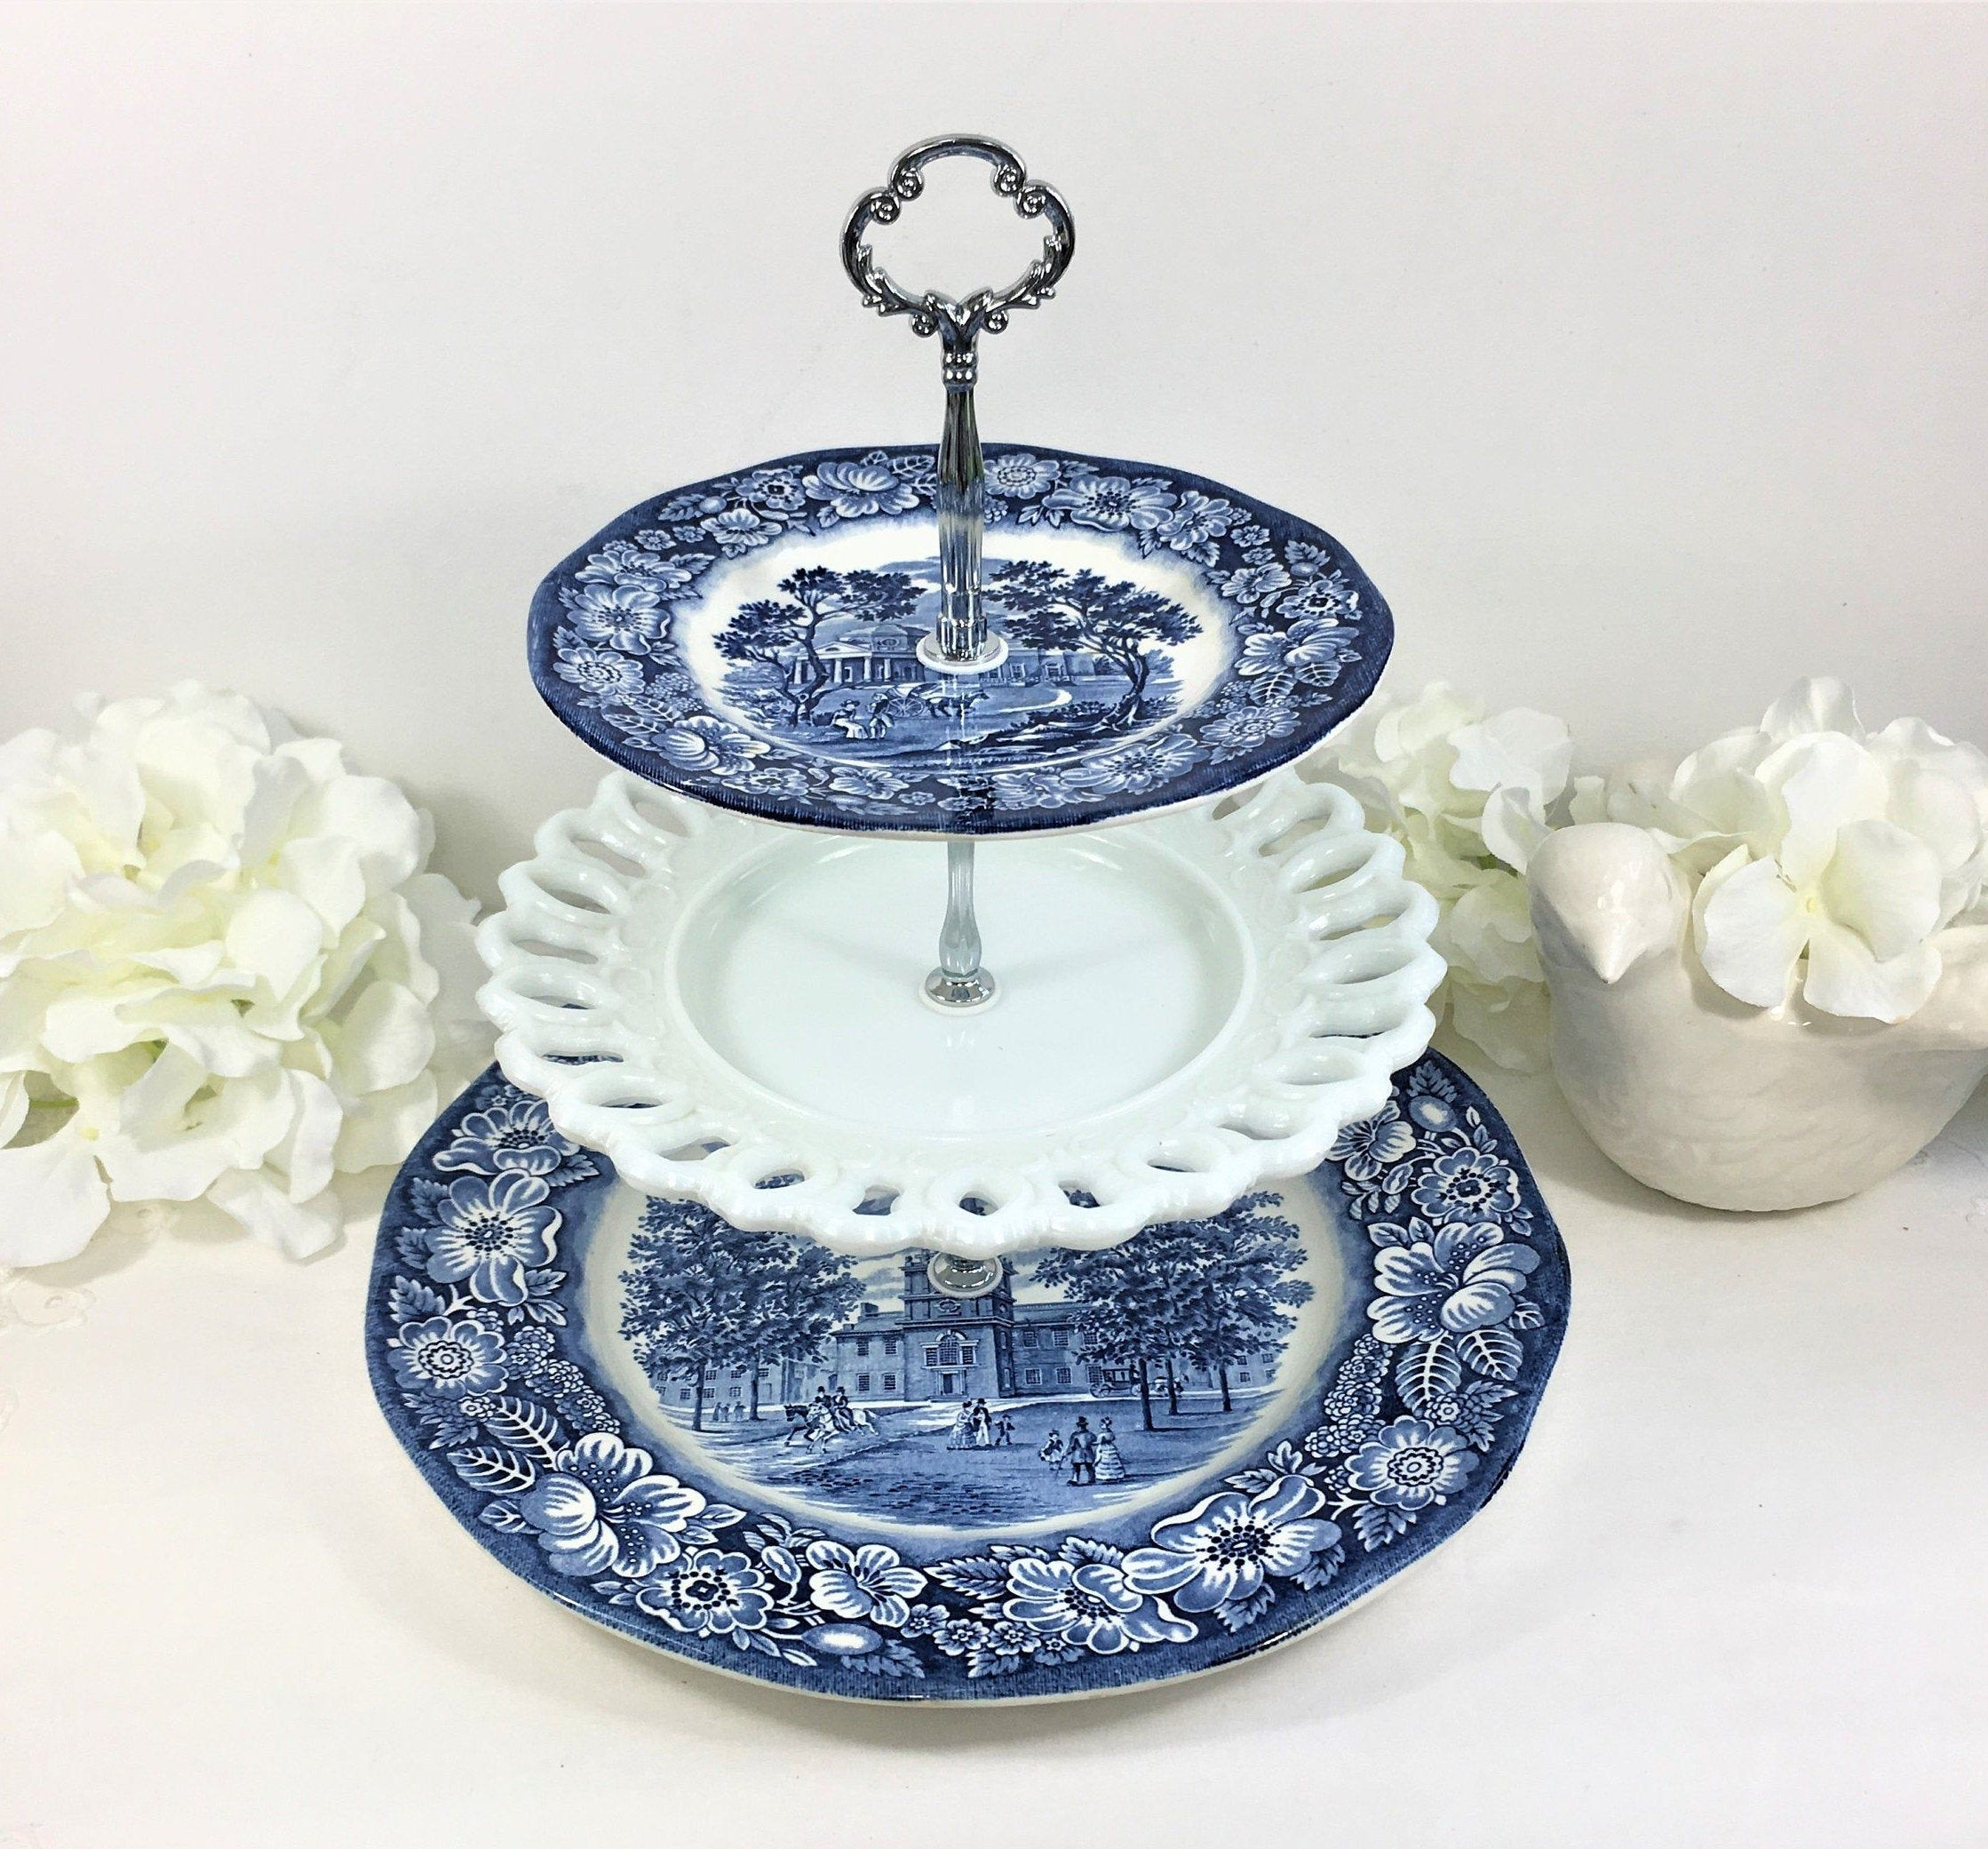 3 Tier Cake Stand Made With Liberty Blue Ironstone Plates And White Milk Glass Plate Blue And White C Tiered Cake Stand 3 Tier Cake Stand Blue And White China